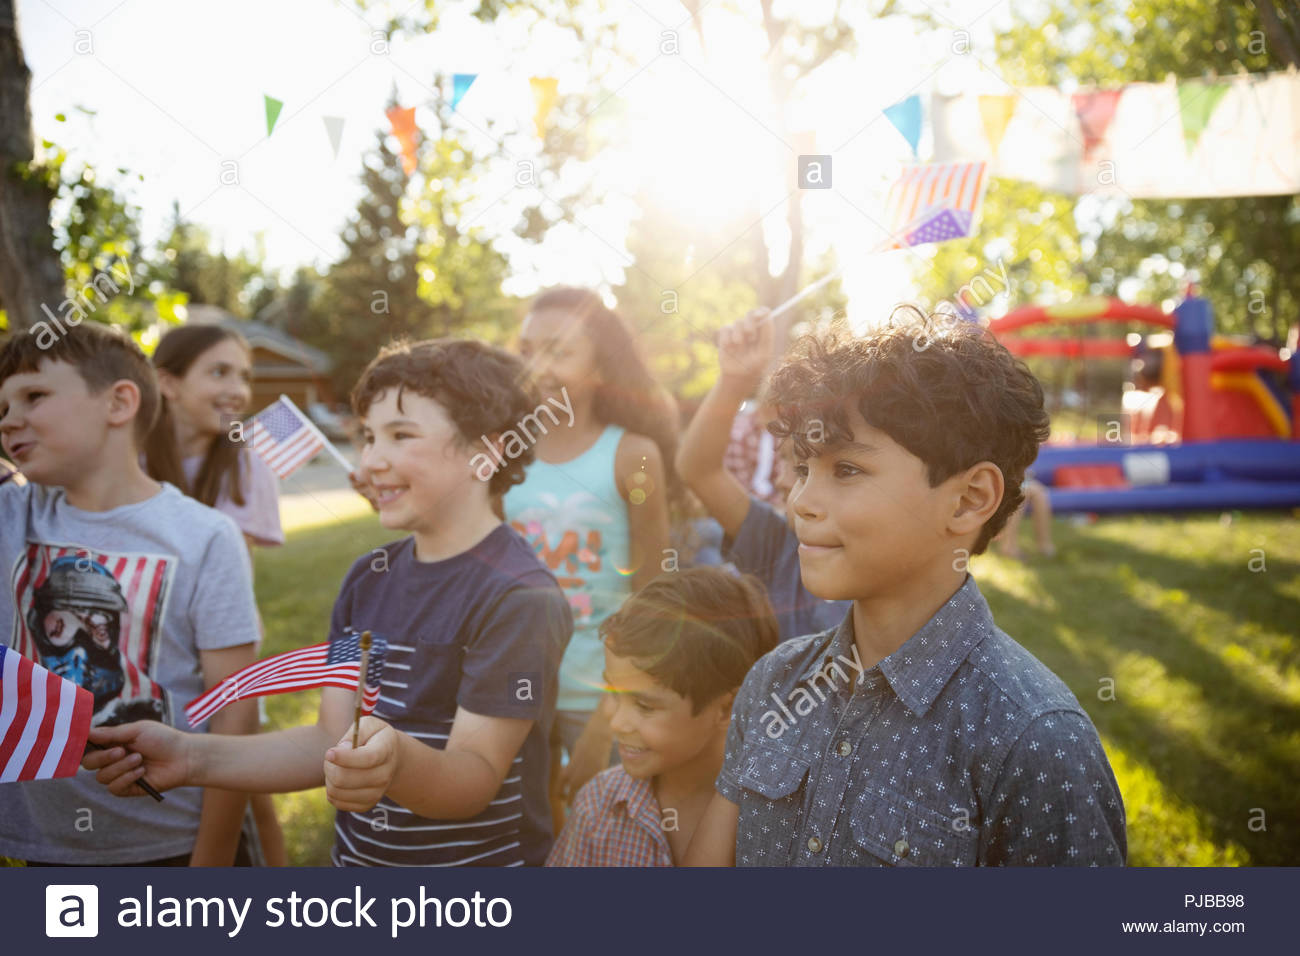 Kids waving American flags at 4th of July summer neighborhood block party in sunny park - Stock Image